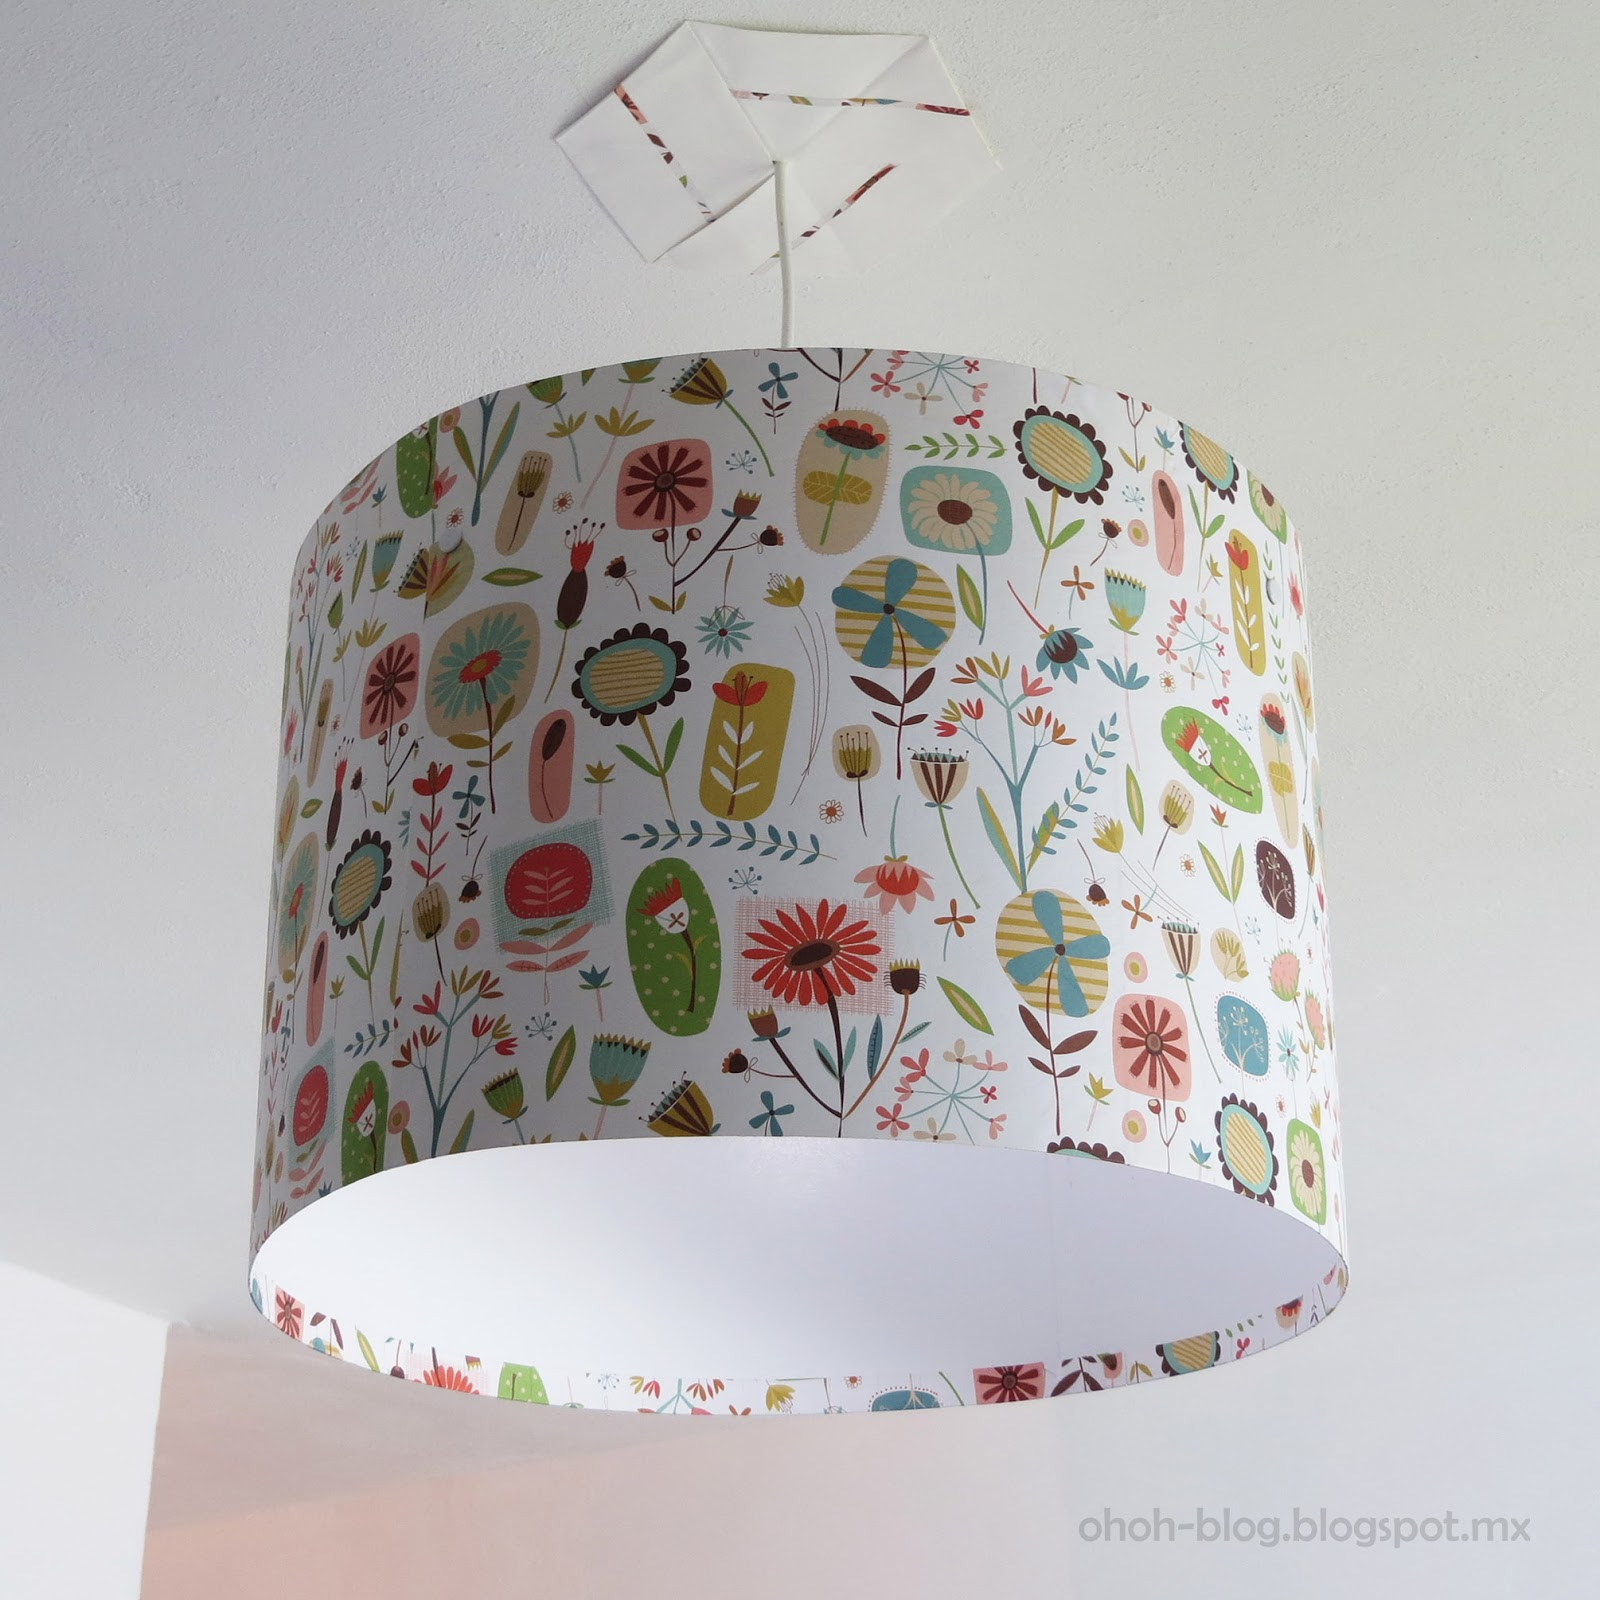 diy lampshade pantalla ohoh blog diy and crafts